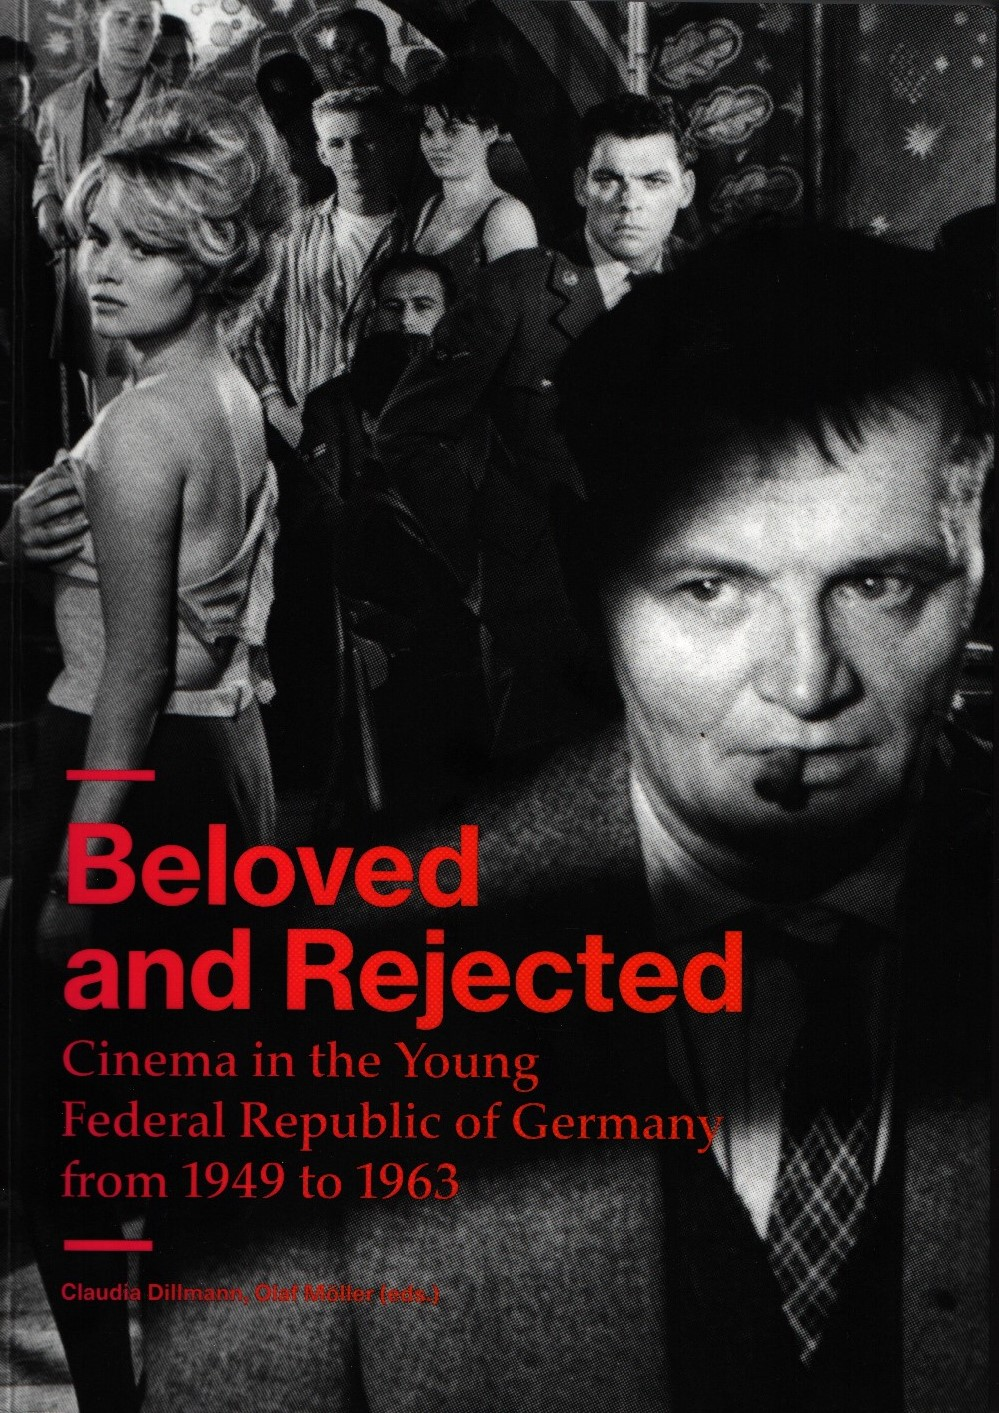 Beloved and Rejected: Cinema in the Young Federal Republic of Germany from 1949 to 1963